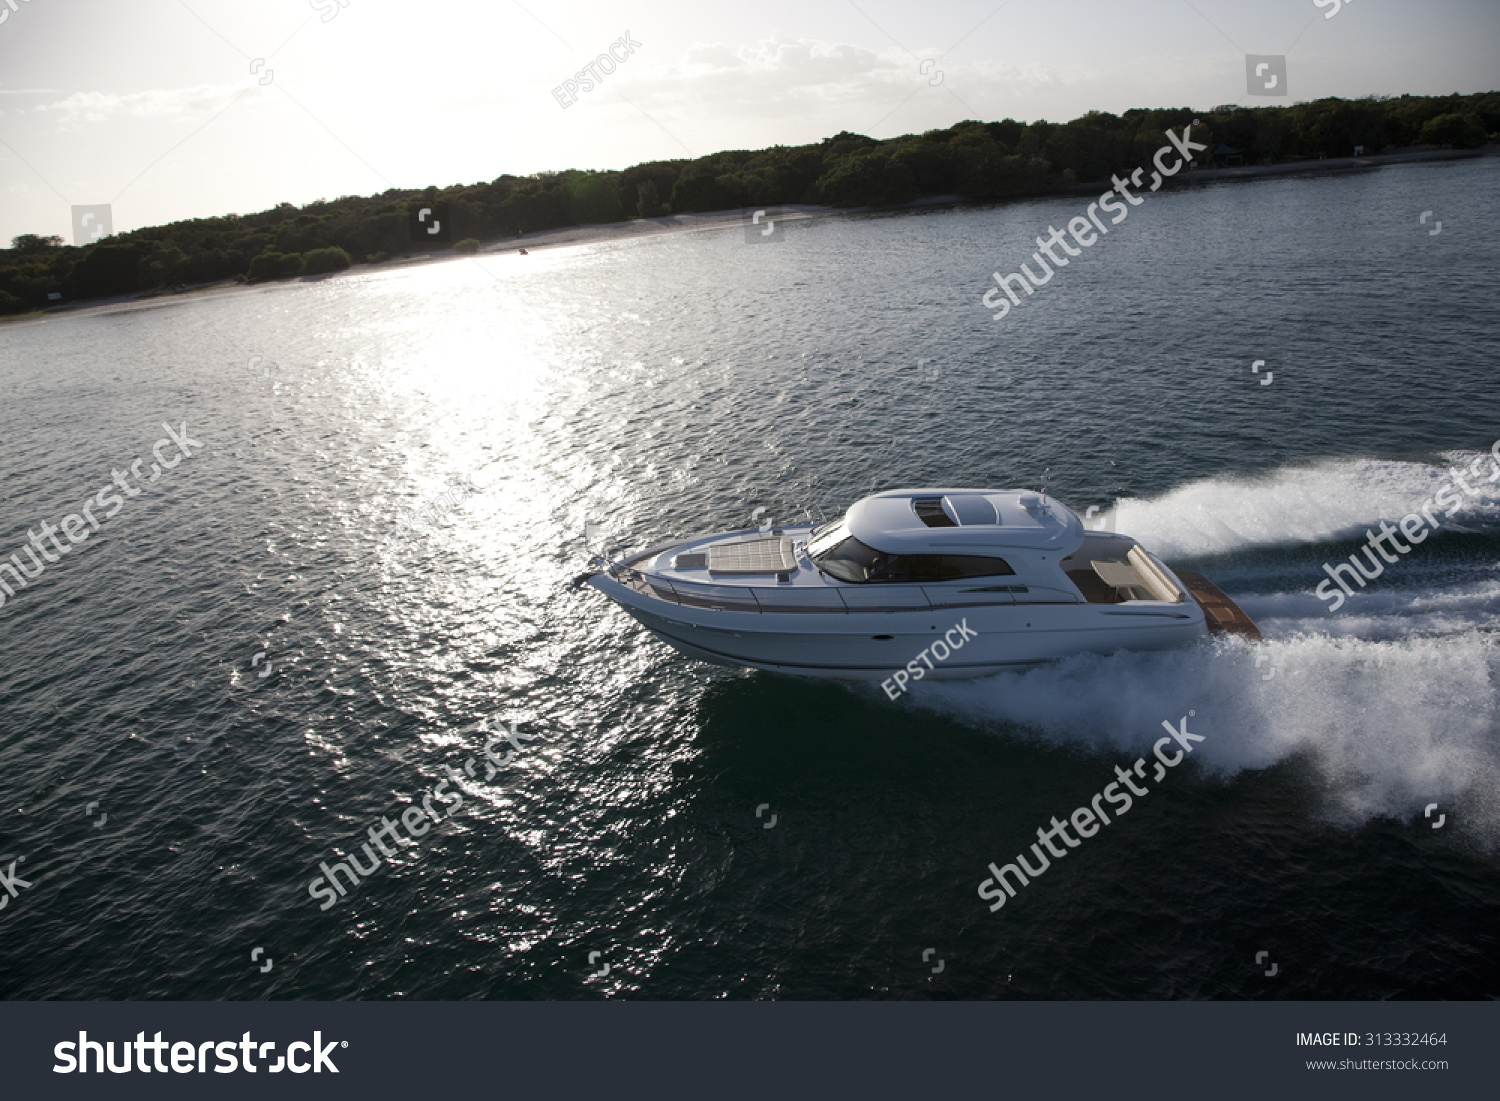 Image Of A Small Motor Boat Sailing In A Sea Across A